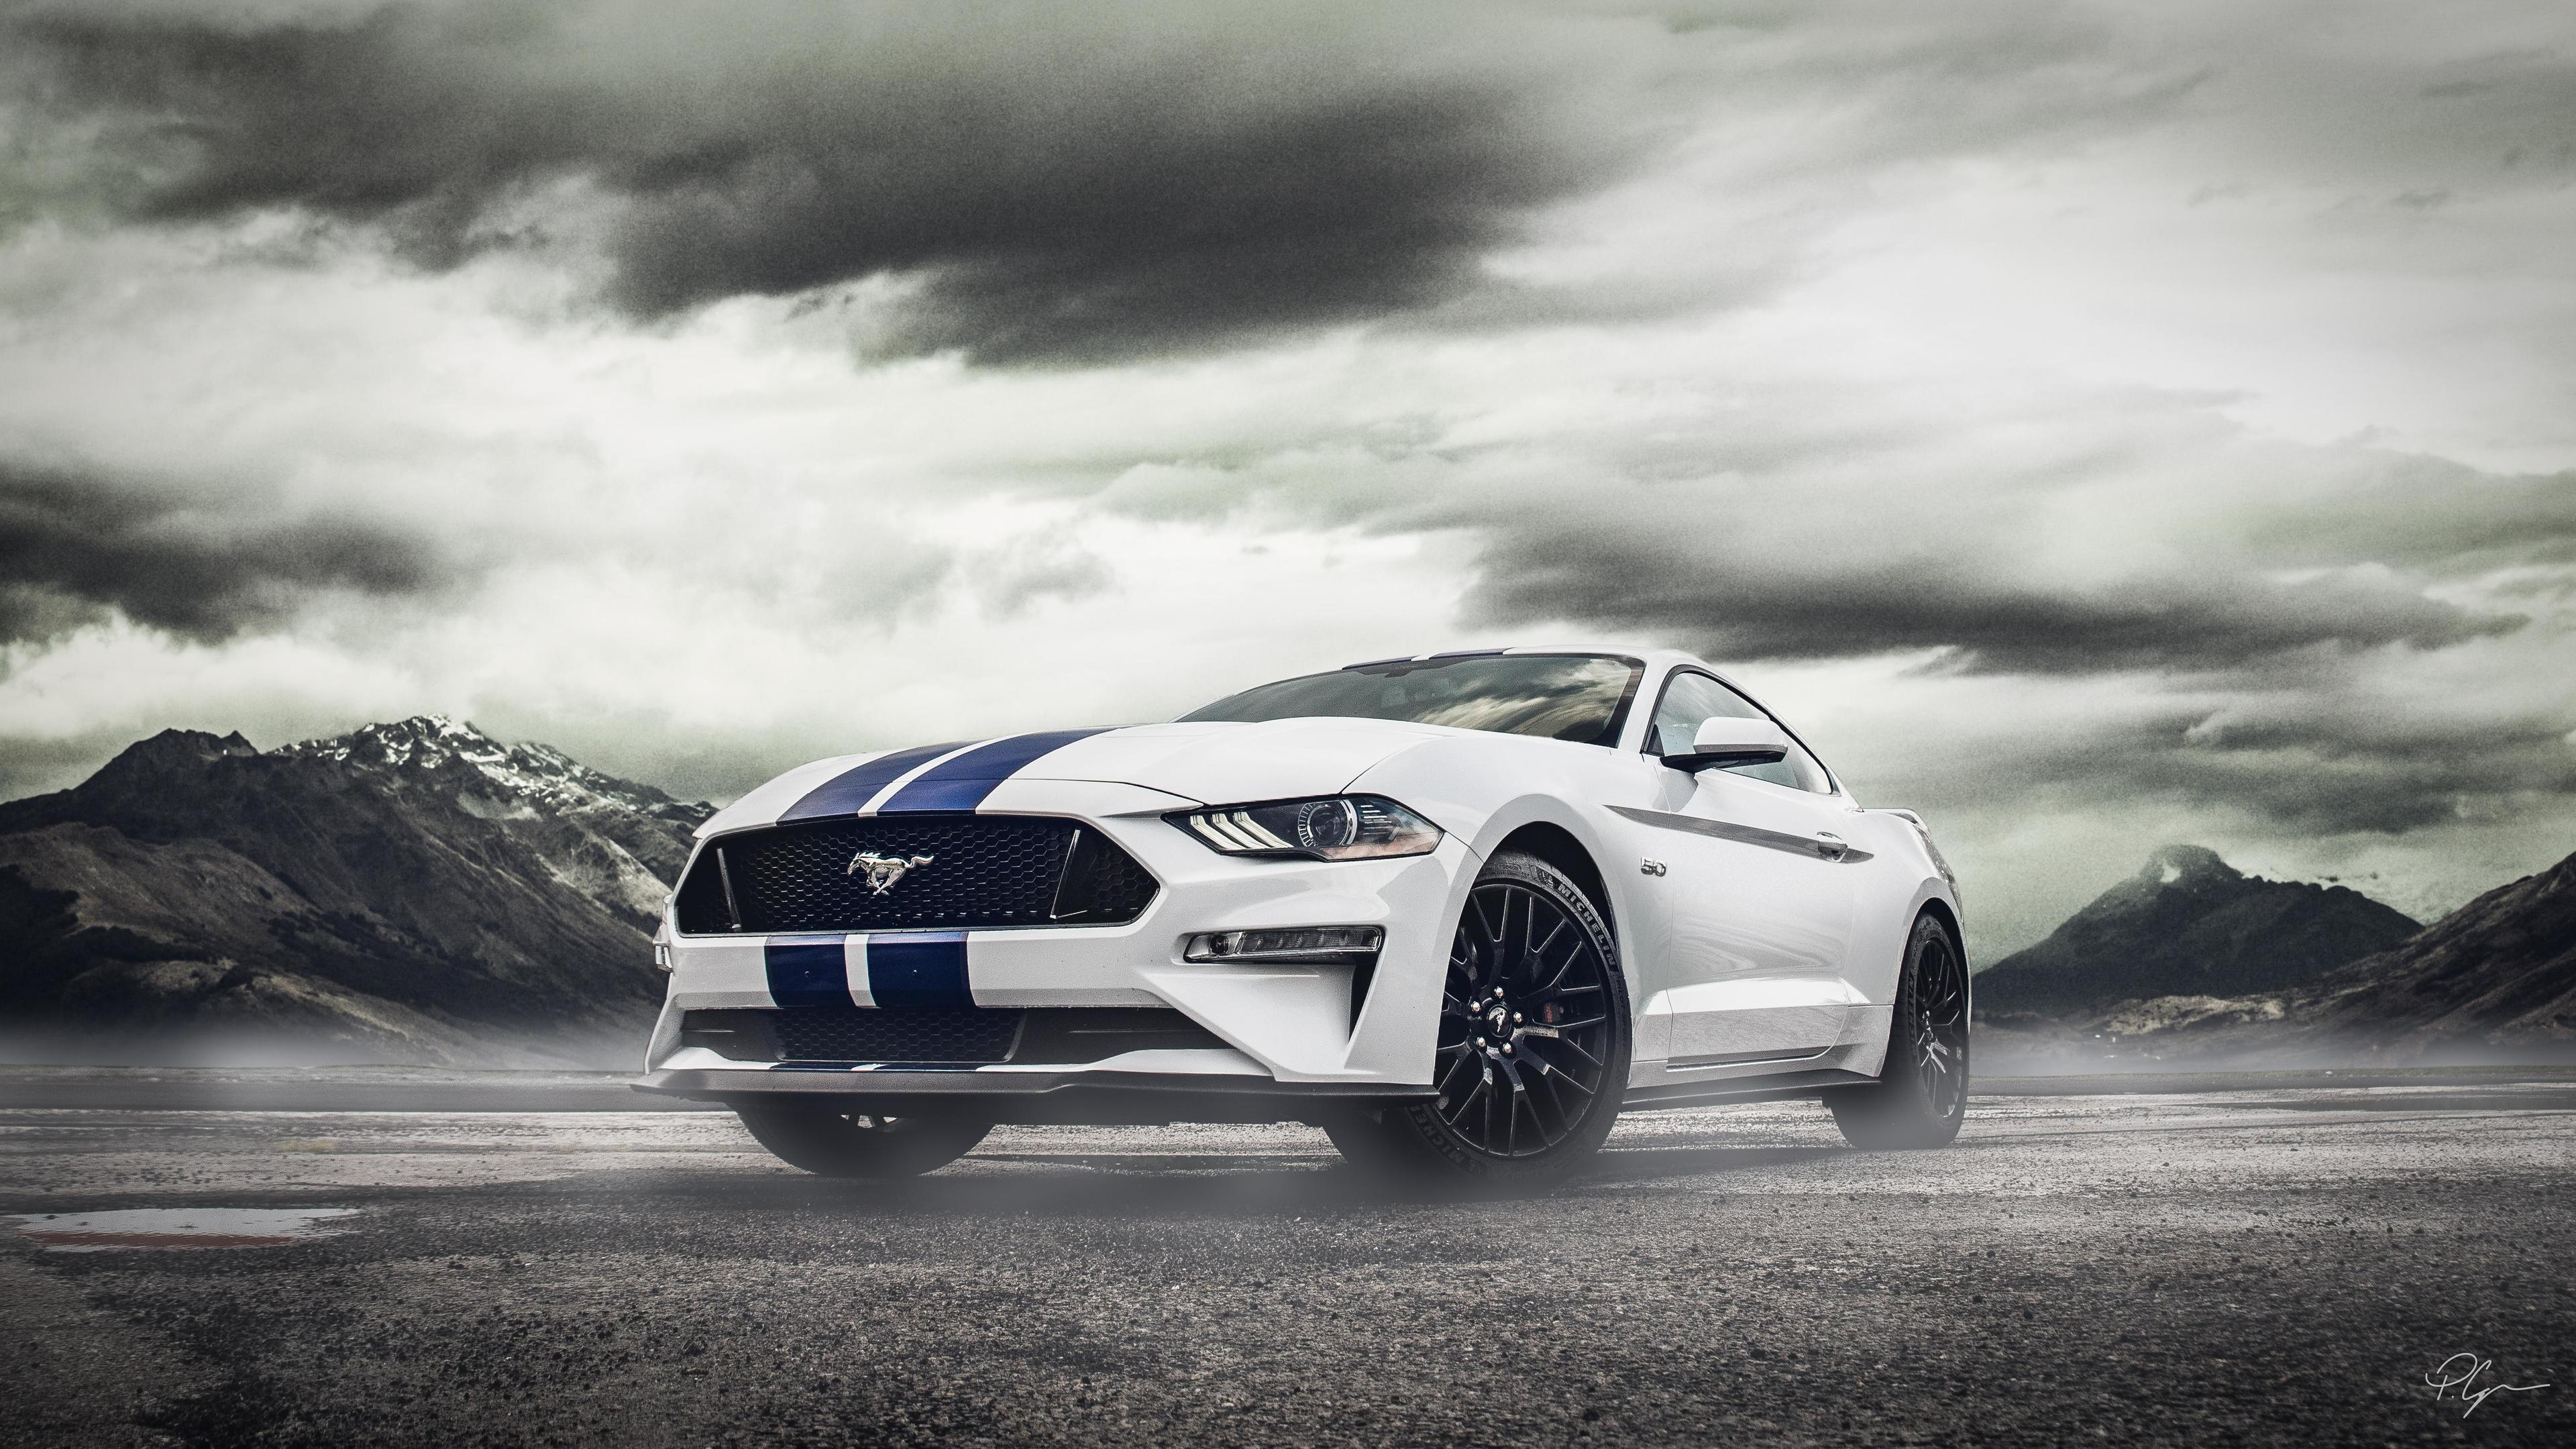 Everyone dreams of having a sports car at some point in their lives. Mustang 5k Wallpapers Top Free Mustang 5k Backgrounds Wallpaperaccess